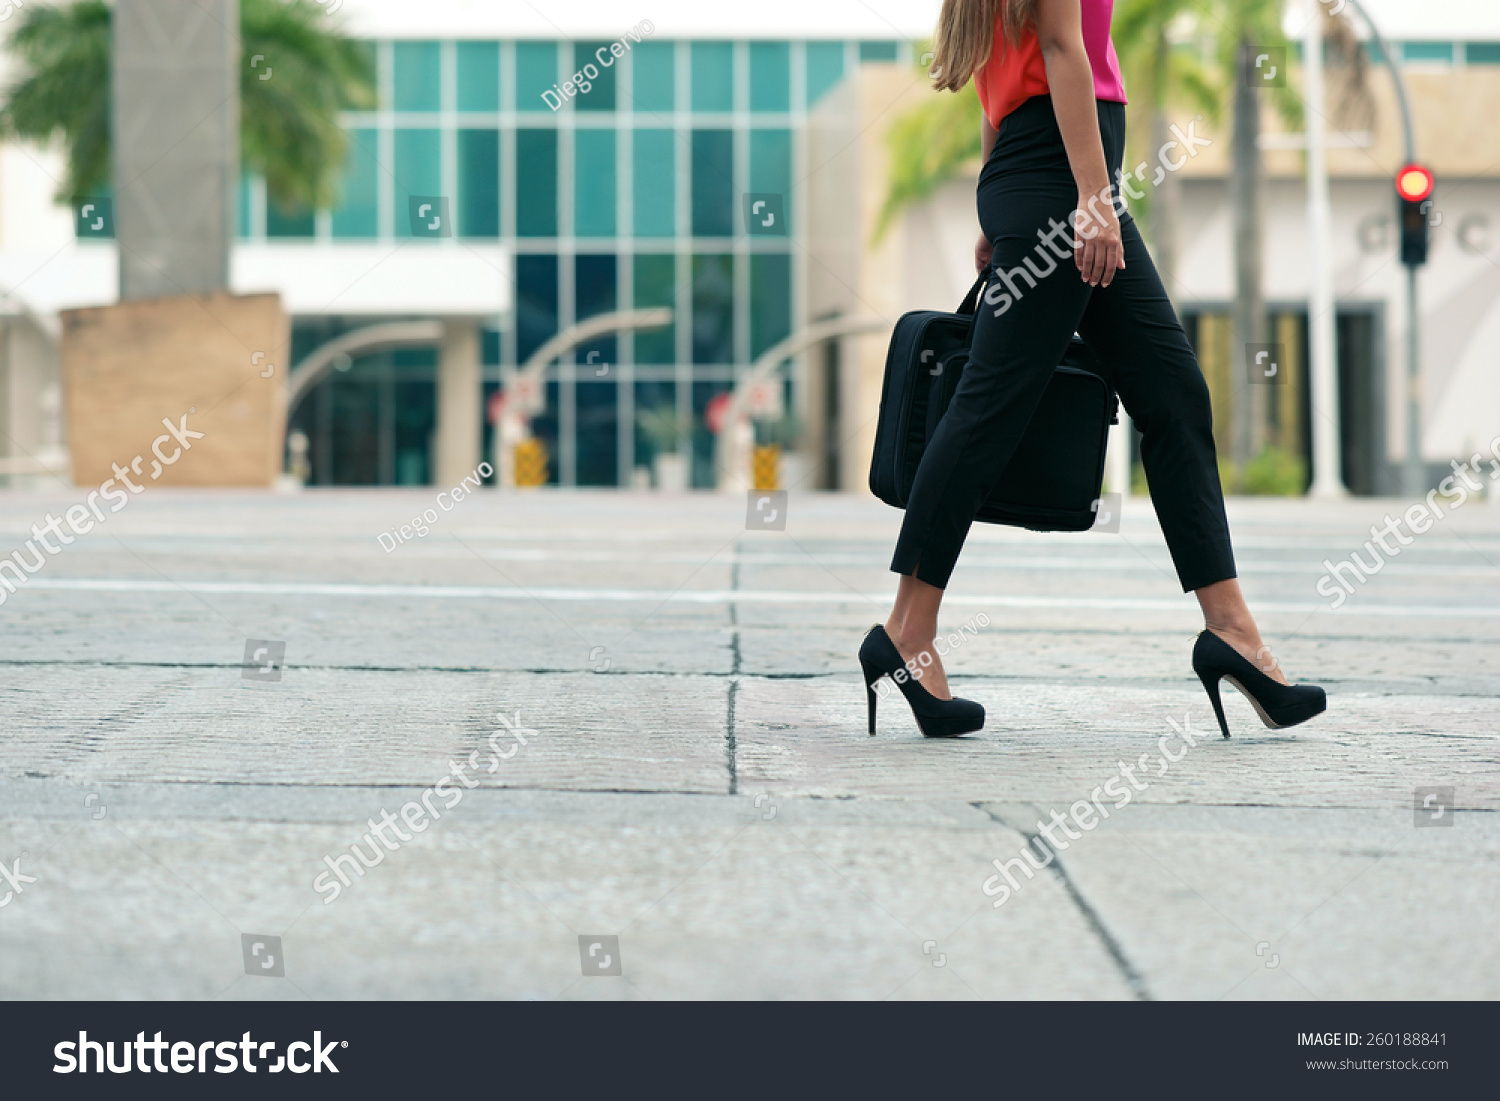 stock-photo-cropped-view-of-business-woman-walking-in-city-street-with-laptop-bag-commuting-and-going-to-work-260188841.jpg